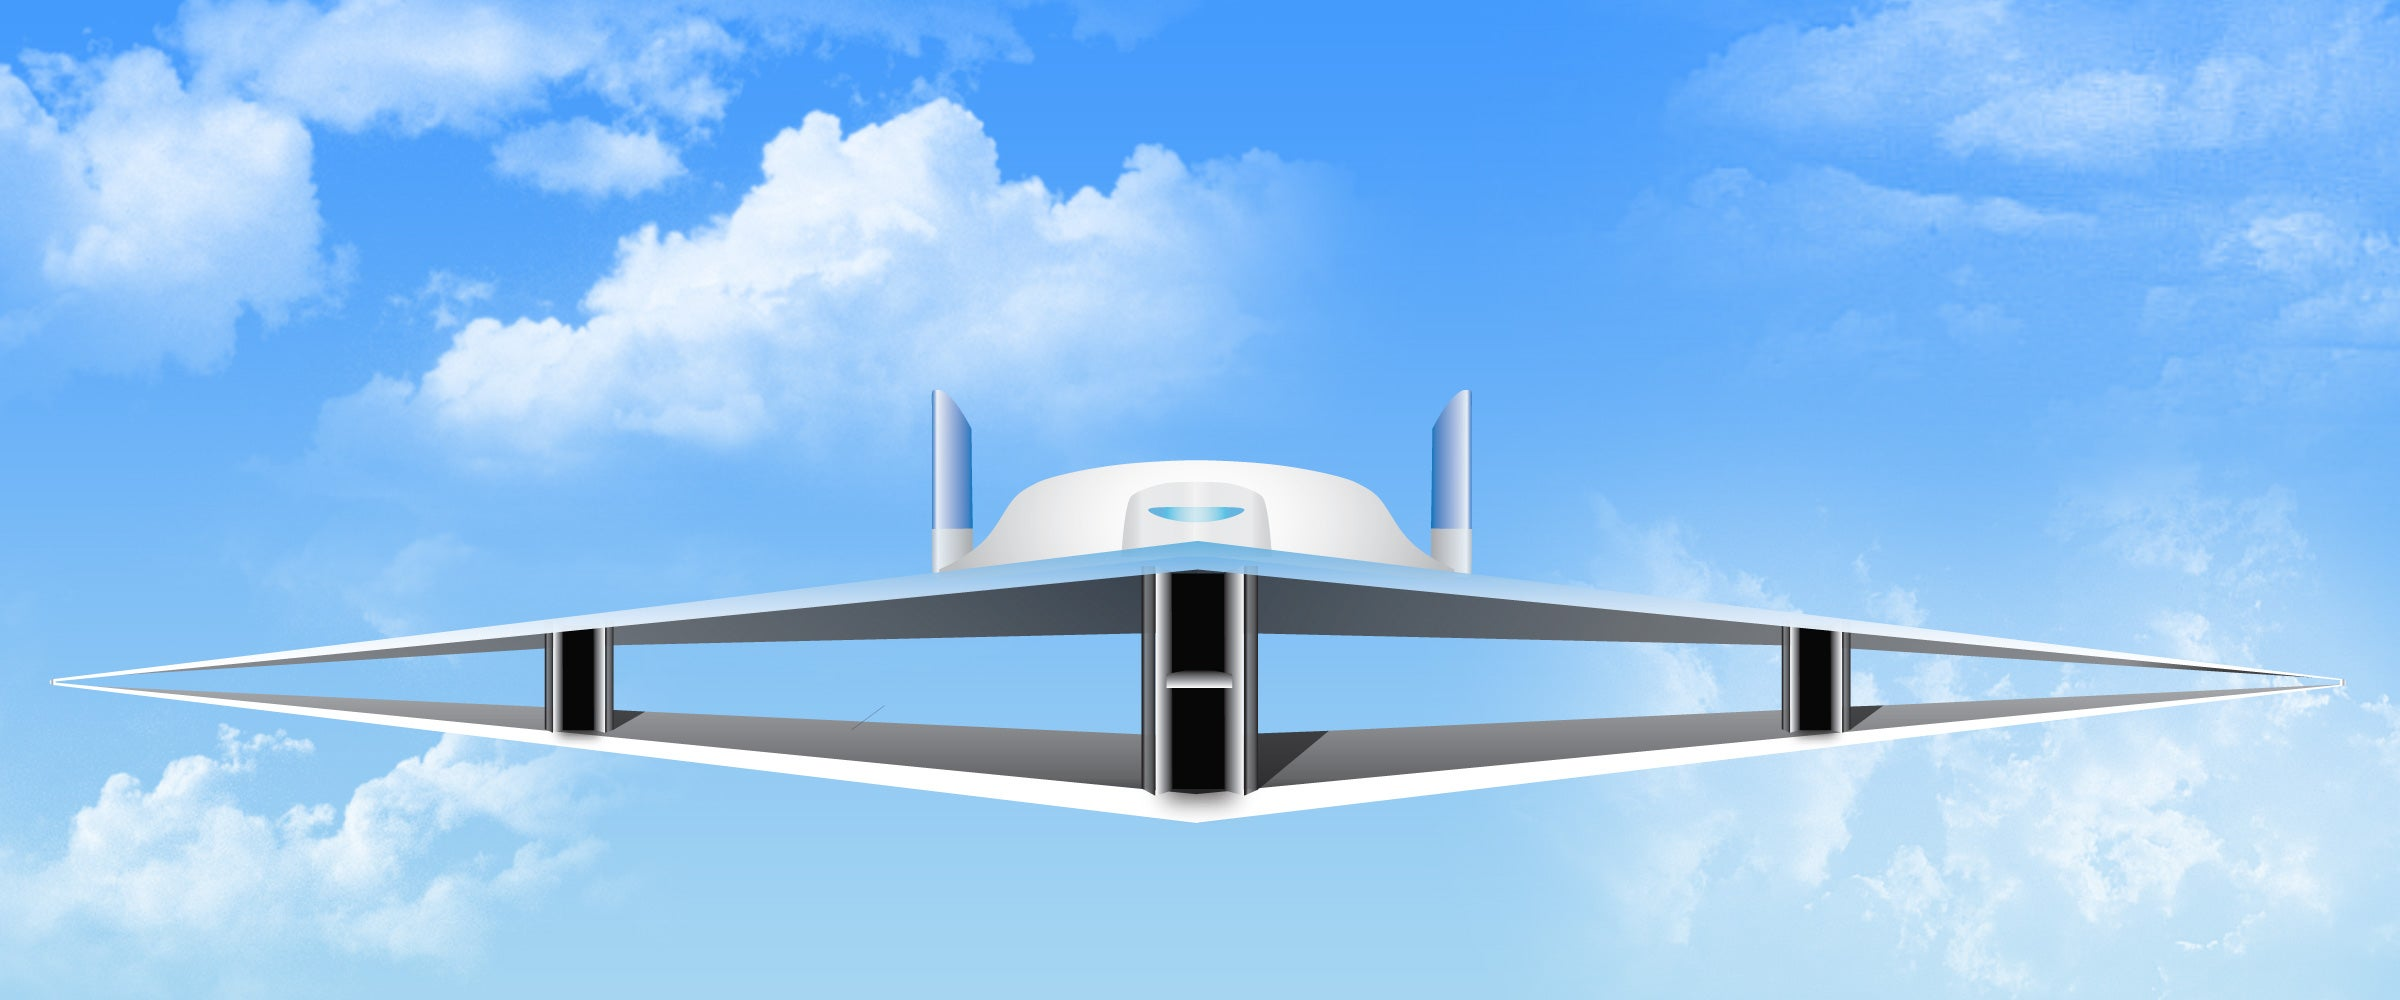 The Supersonic Jet of the Future Will Be a Biplane